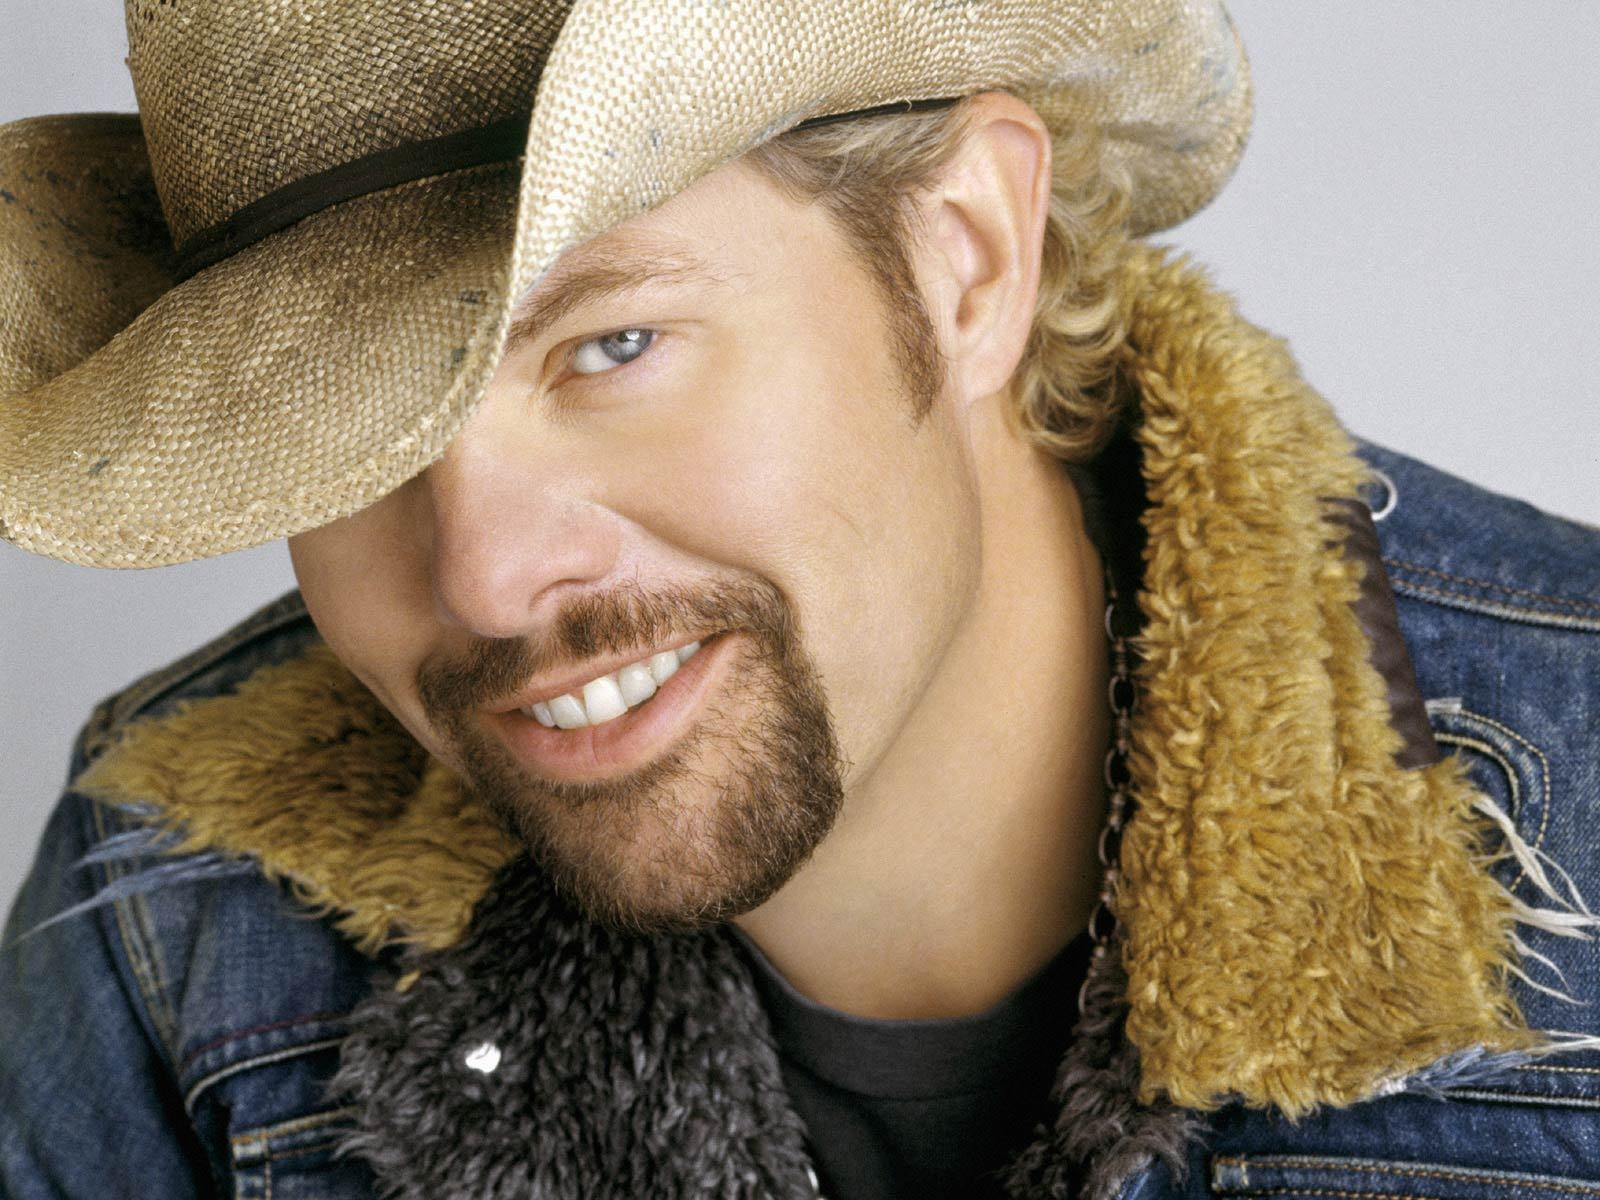 toby kieth is gay